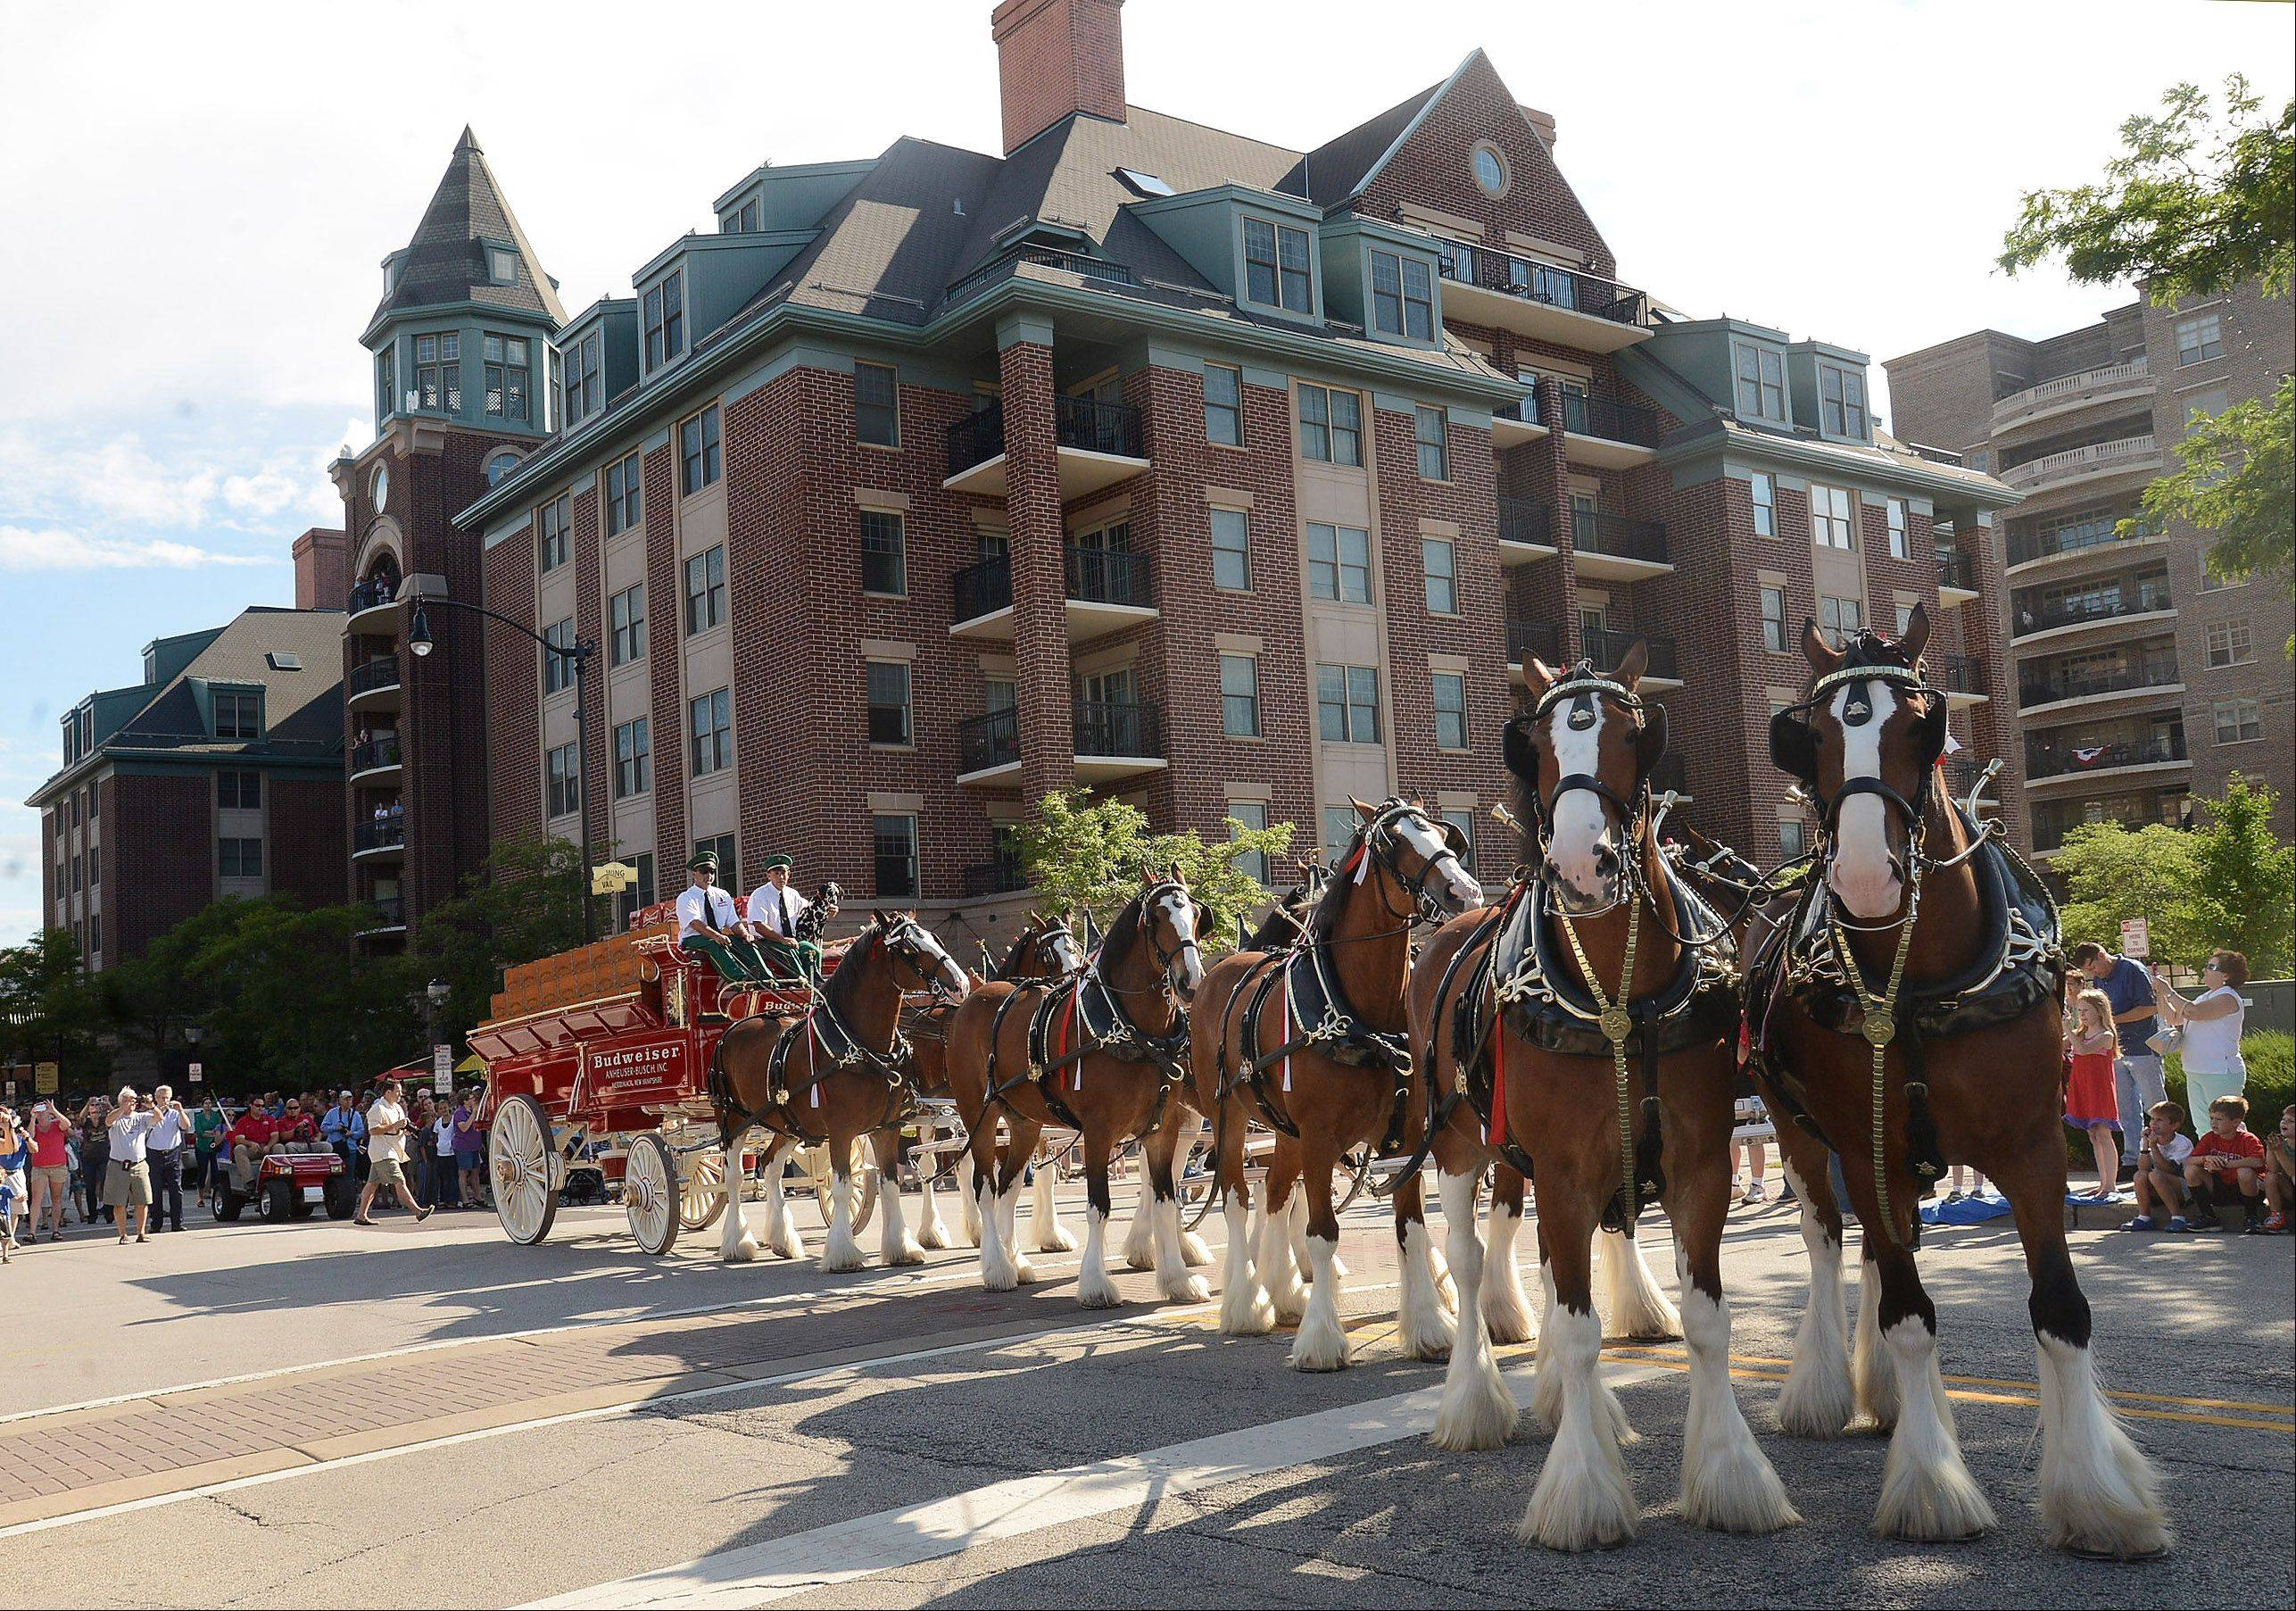 The Budweiser Clydesdales make their way down Vail Street in downtown Arlington Heights.